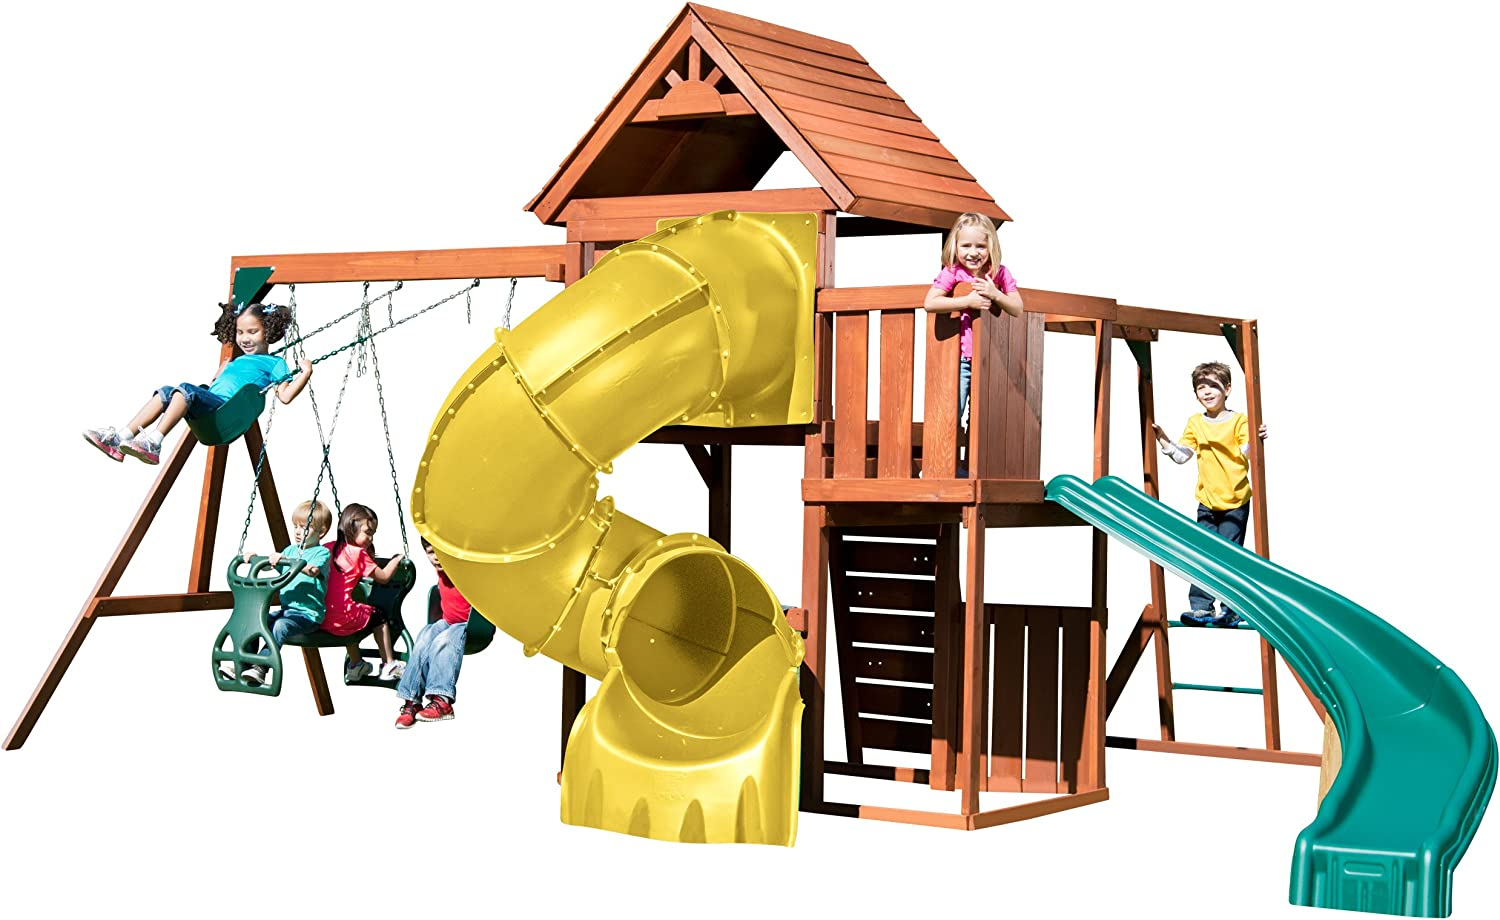 Top 7 Best Swing Sets For Older Kids Playing In Backyard (2020) 4